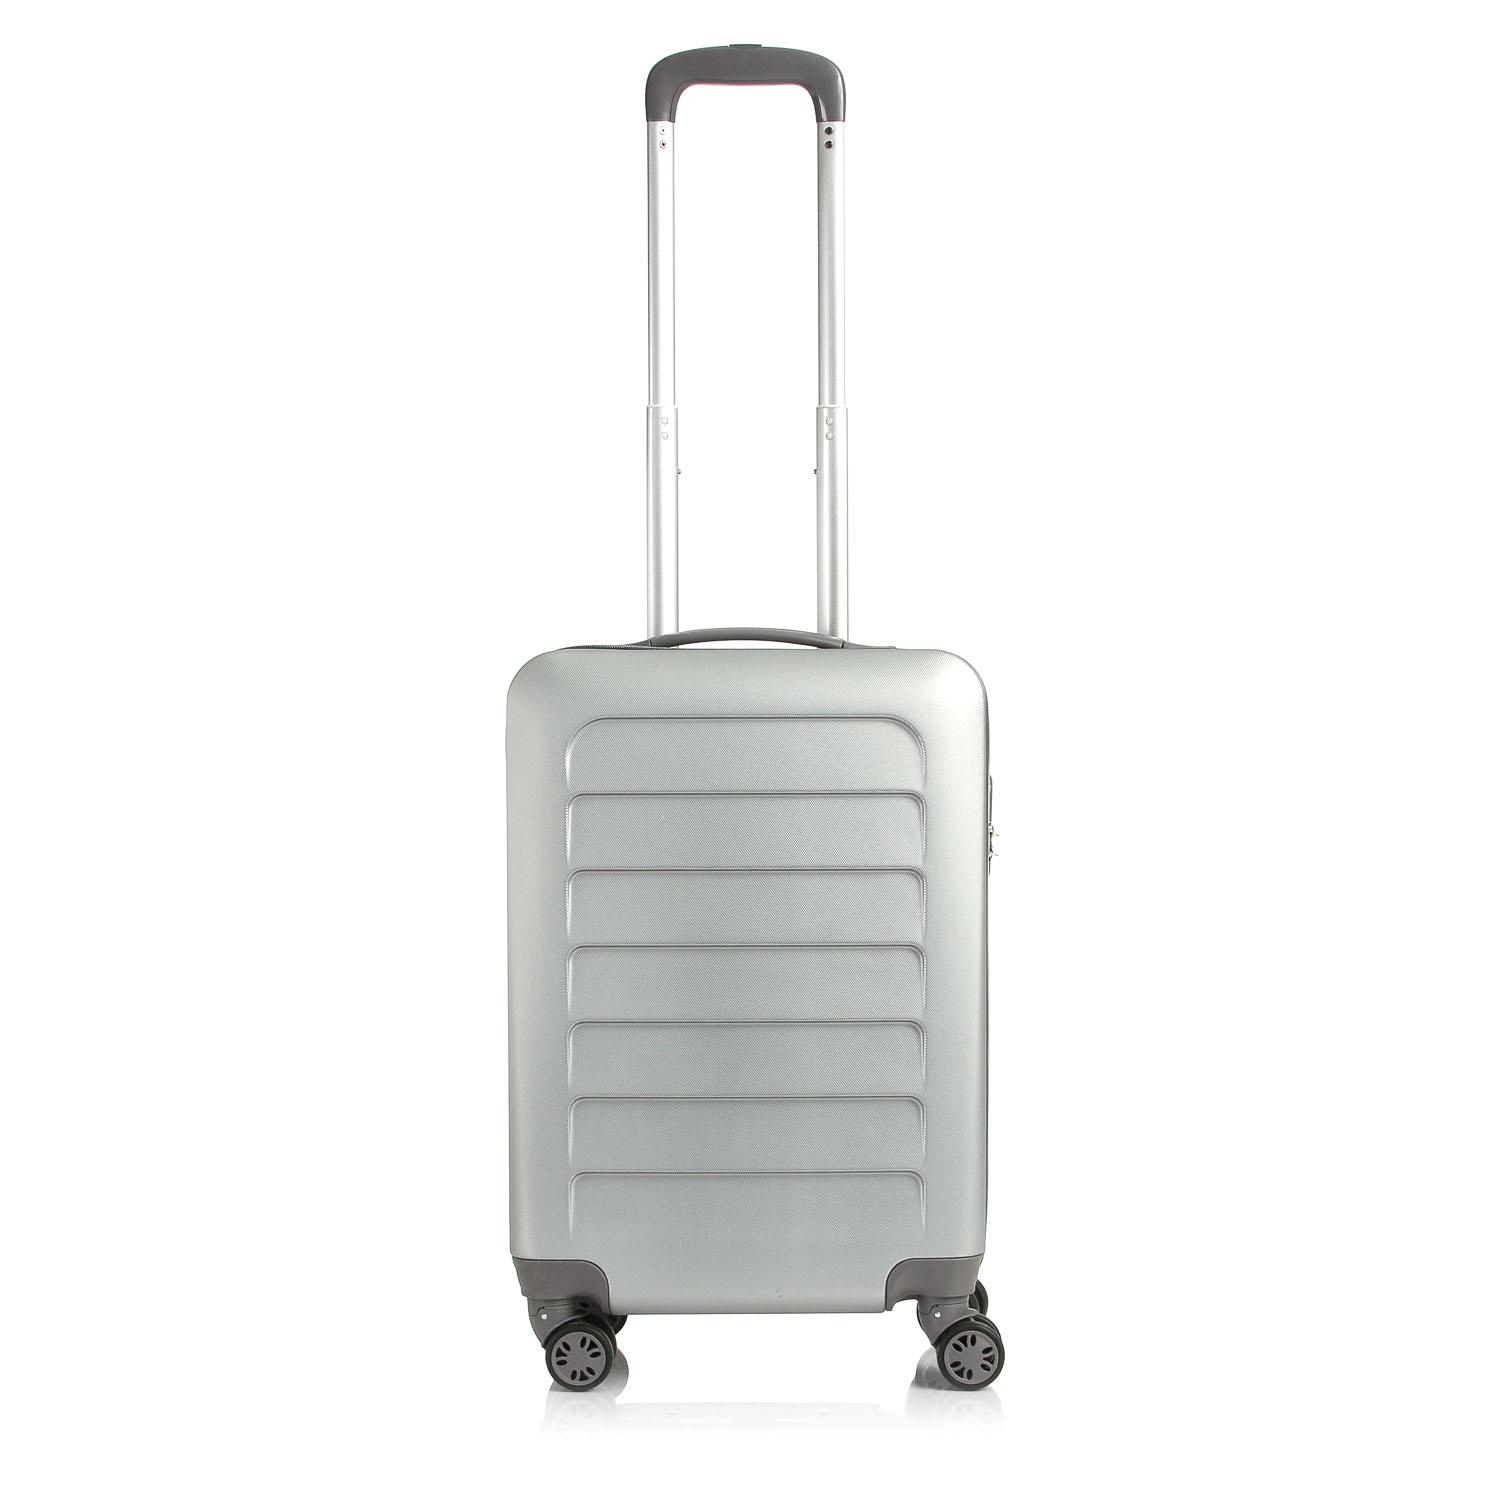 c37fe2a7cd4b Travel Basic Clare 20-Inch Small Hard Case Luggage (Silver)